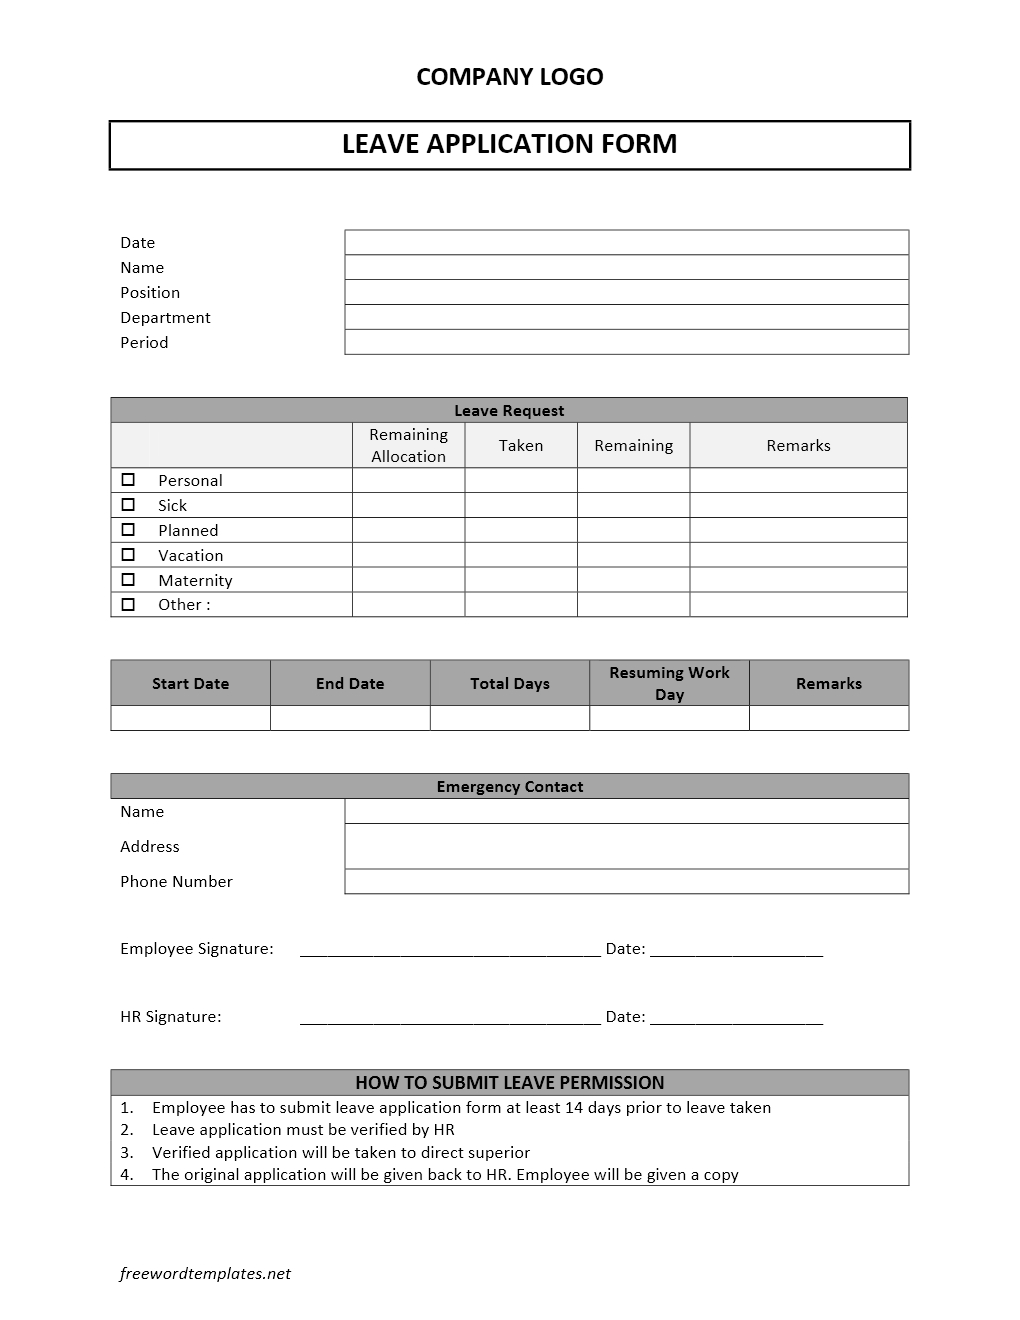 free employment application template word - leave application form